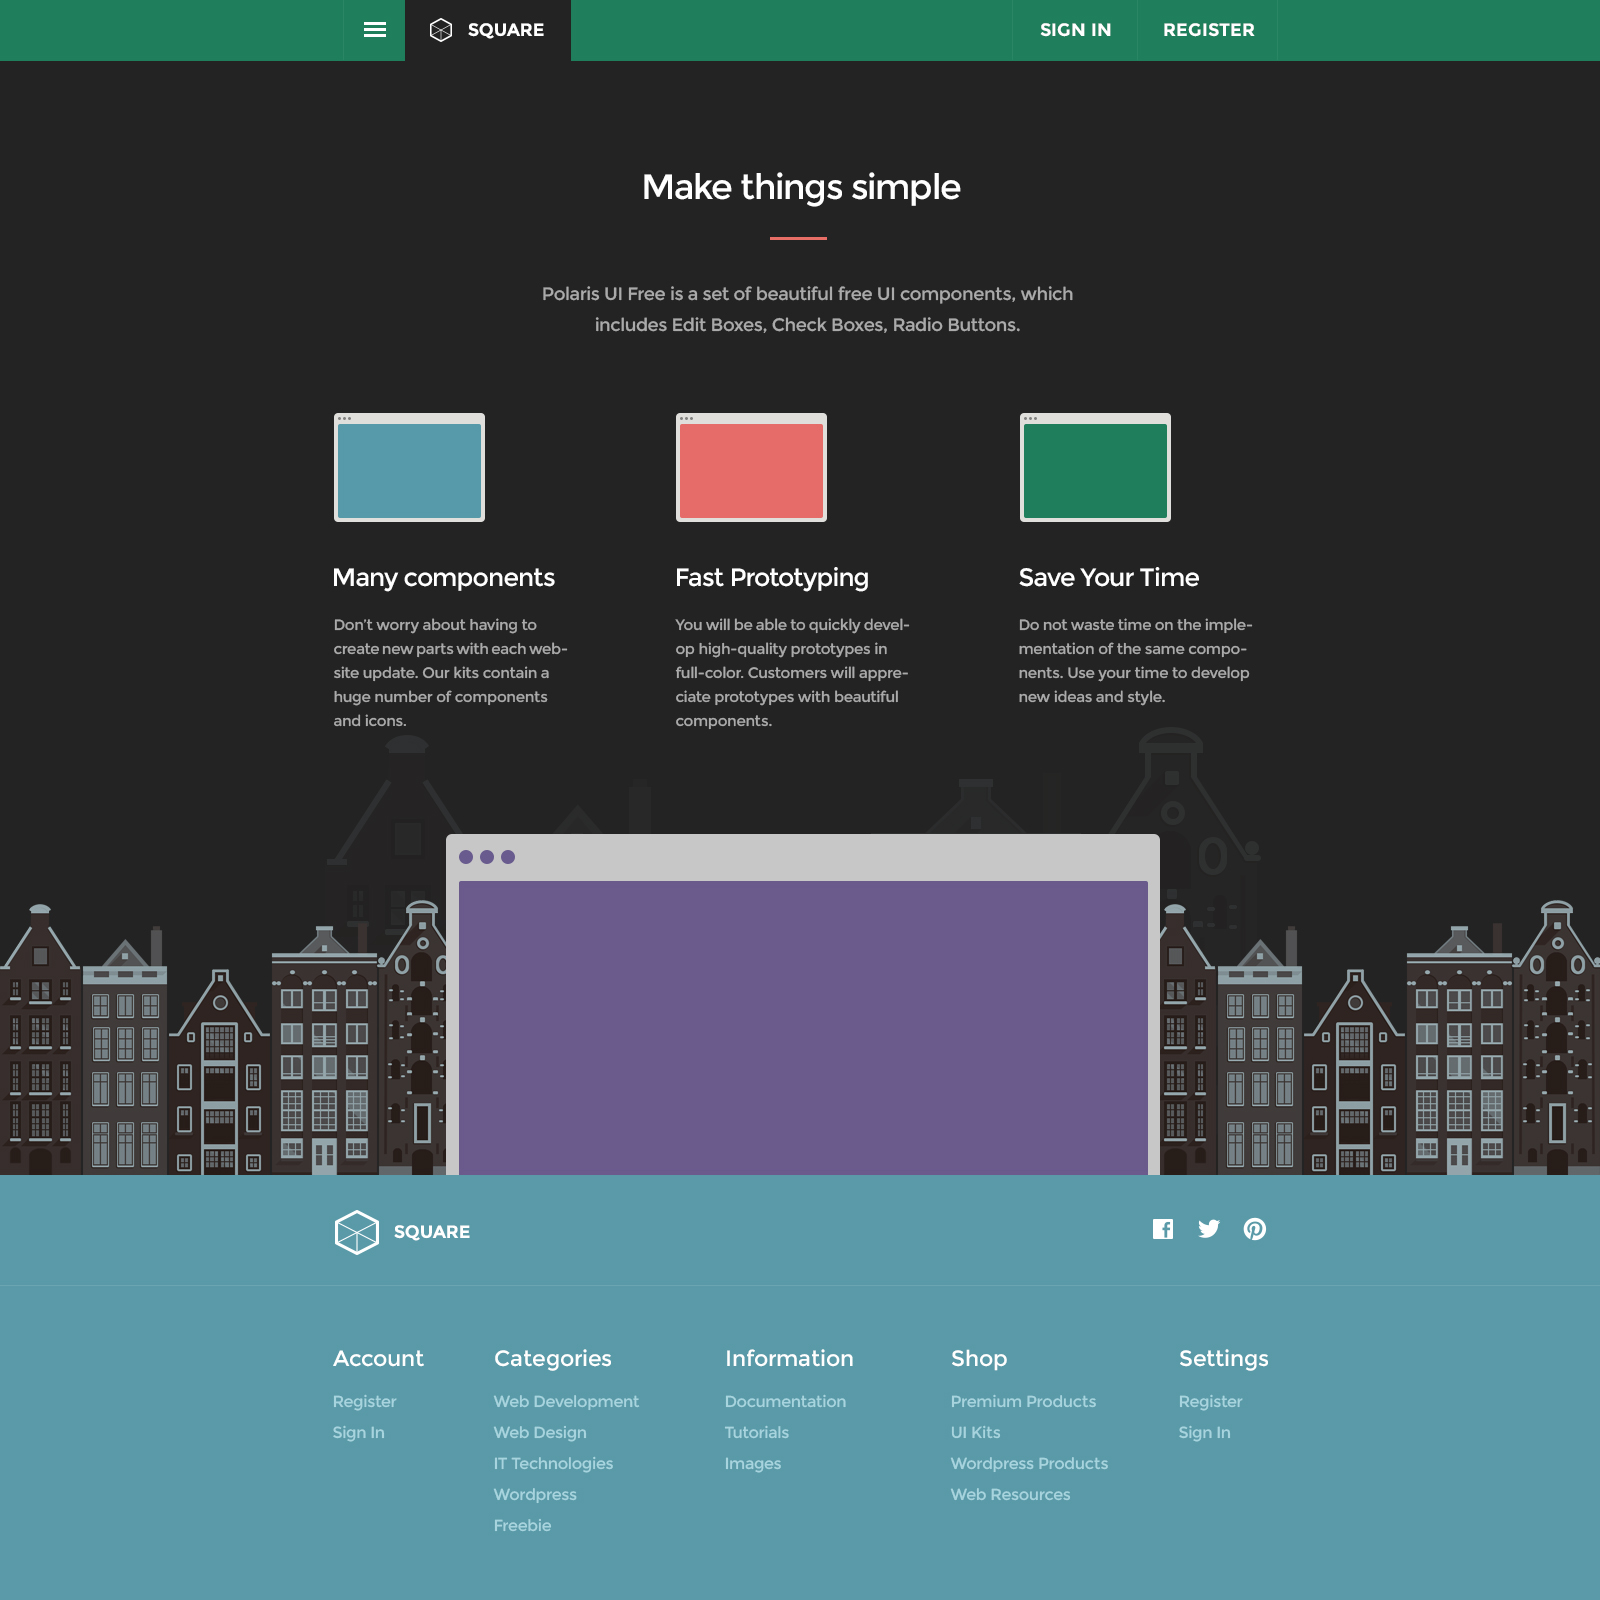 Collection of color palettes photoshop for ui designs web3canvas -  Square Ui Flat Design User Interface Pack